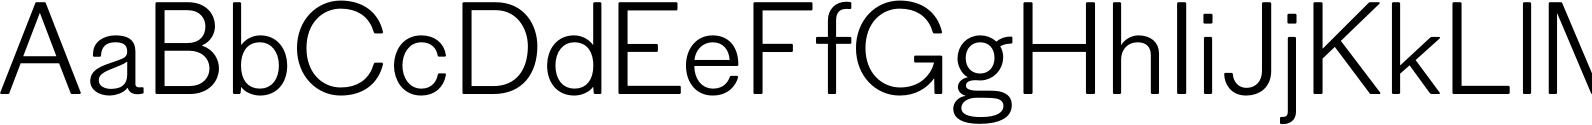 Figgins Sans Regular Font